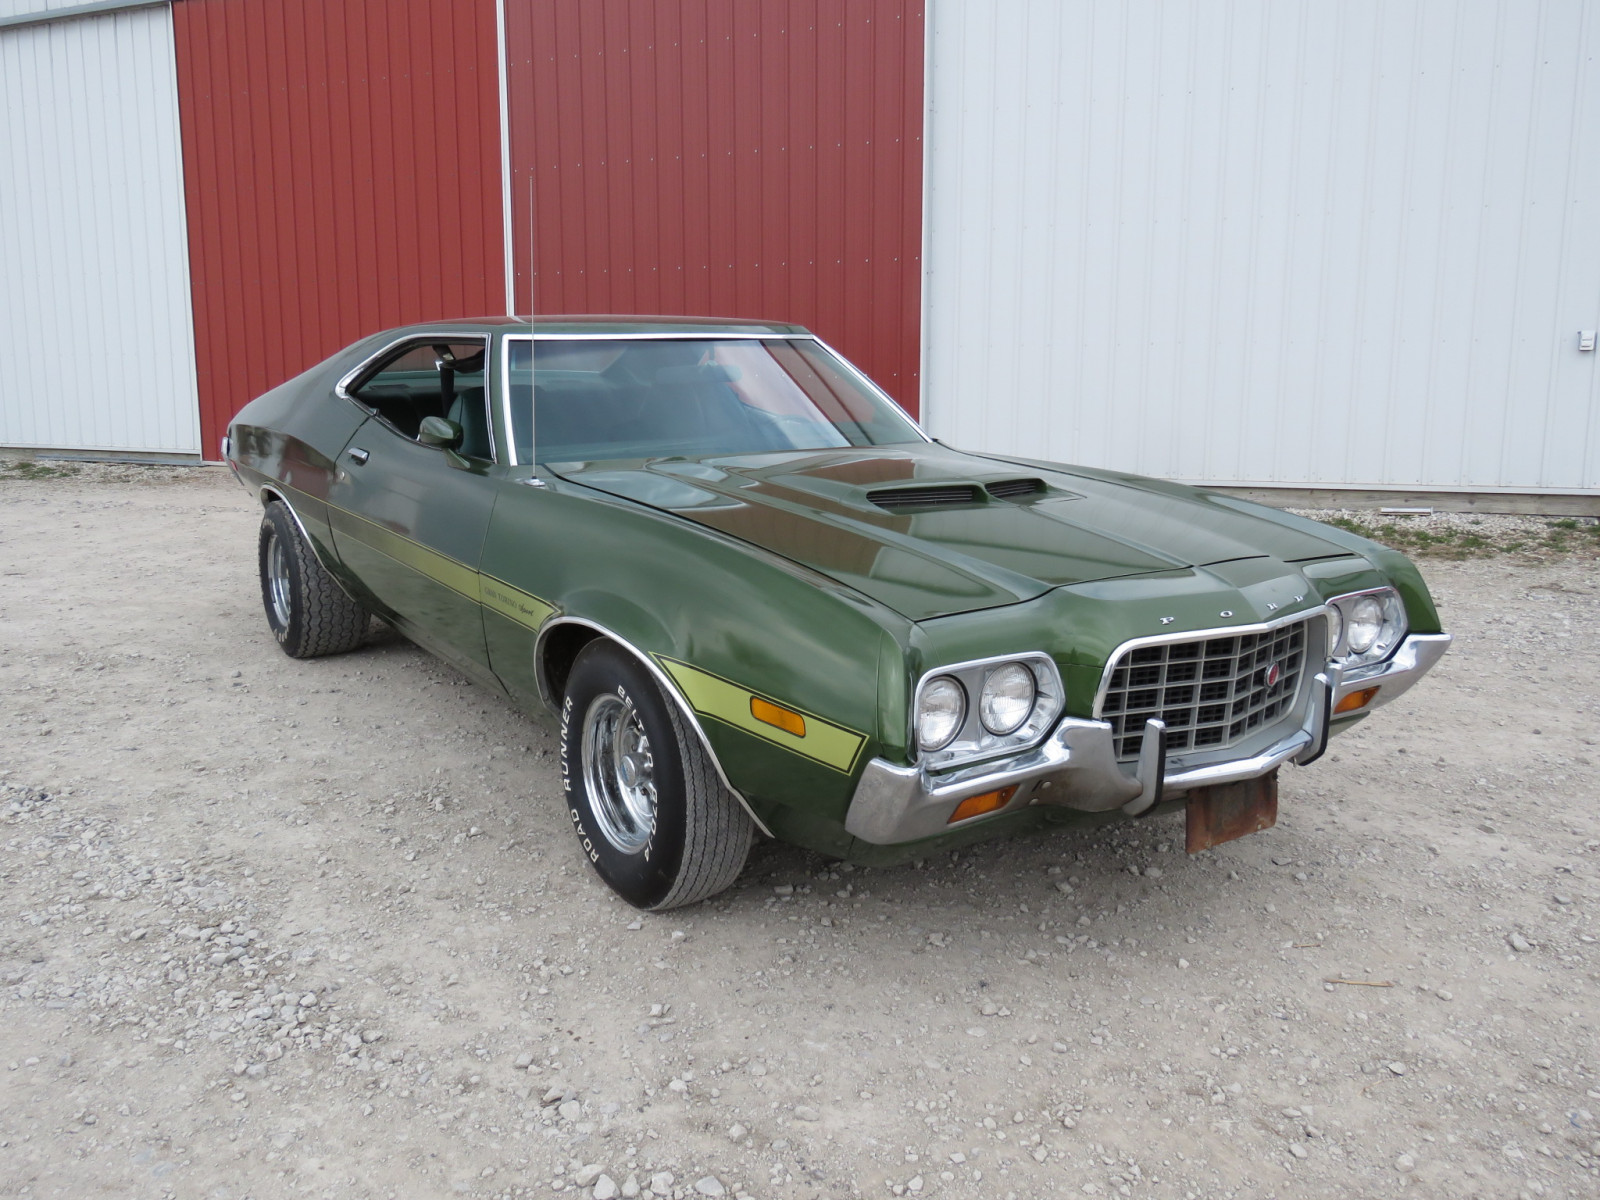 1972 Ford Torino GT Coupe - Image 1